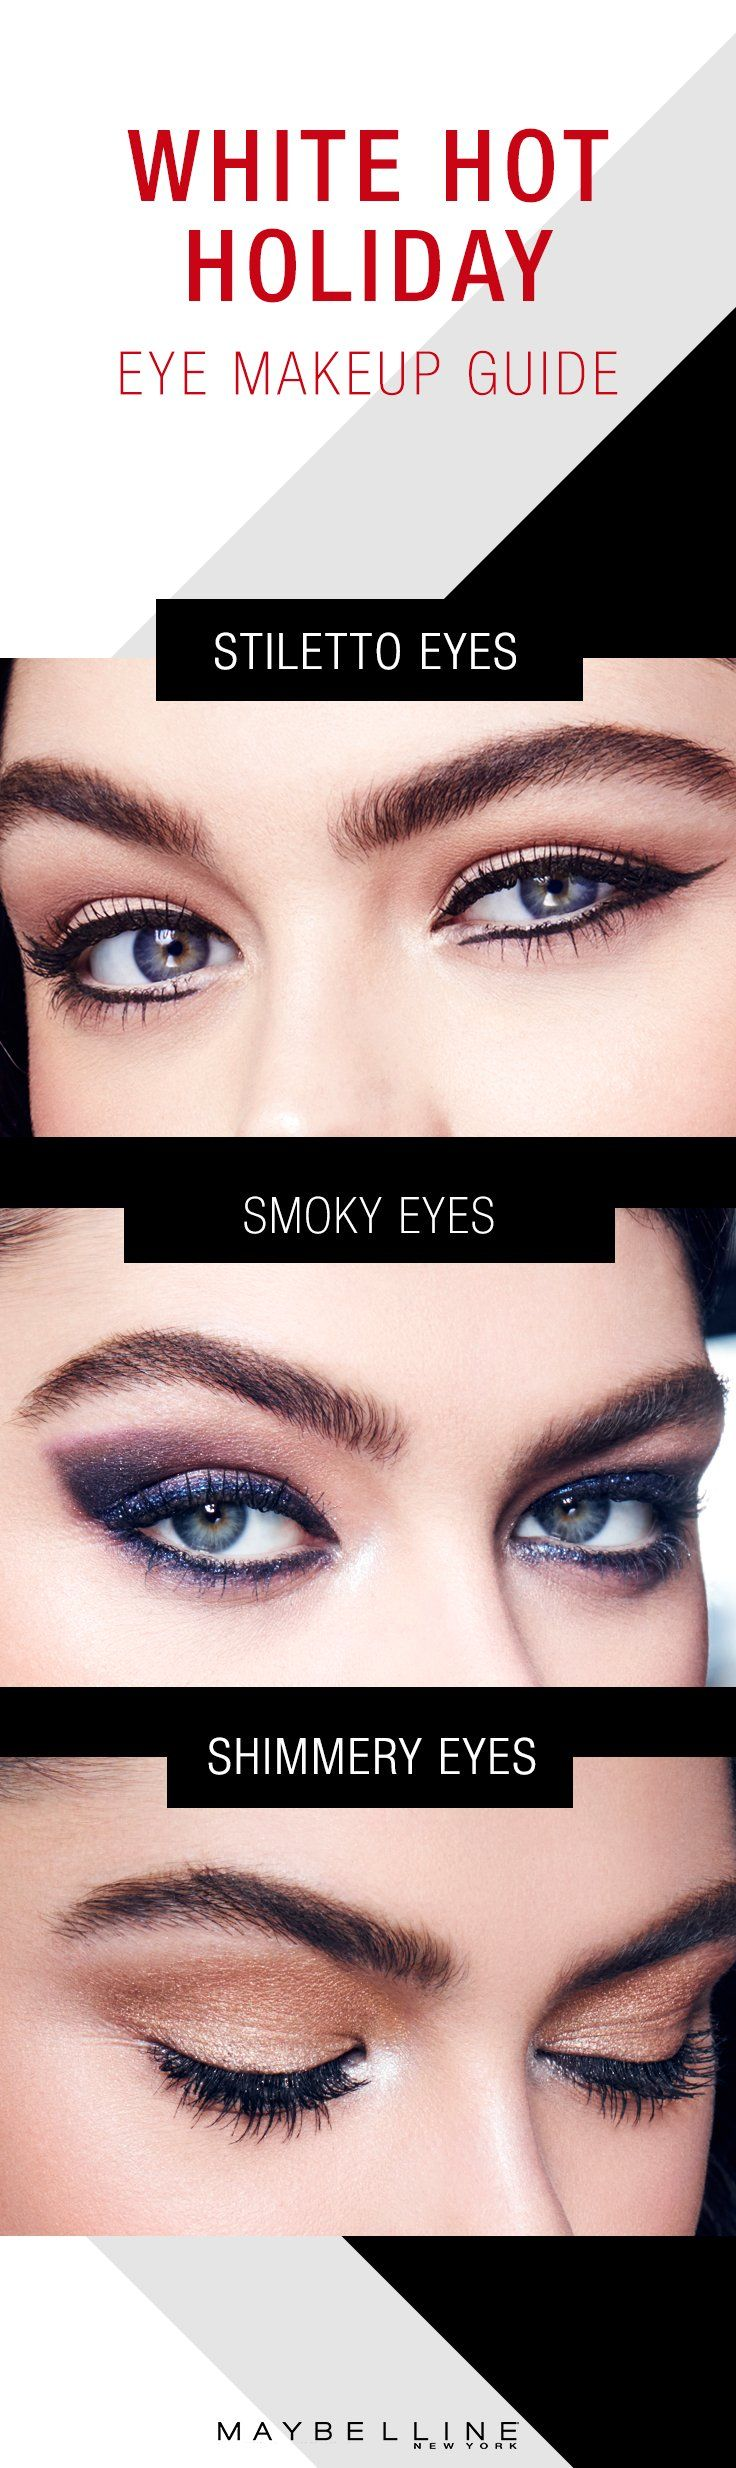 Go from holiday glam to winter hot in a New York minute with these three distinct but equally boss eye looks. Top to bottom: Use Maybelline Master Graphic Eyeliner to slay 'em with a stiletto-inspired eyeliner look. Mesmerize with smoky indigo eyes, courtesy of Maybelline Expert Wear eyeshadow in 'Luminous Lilac'. Go gold and shimmery with Maybelline The Nudes Palette. Or rock all three before the season is done. Xoxo.